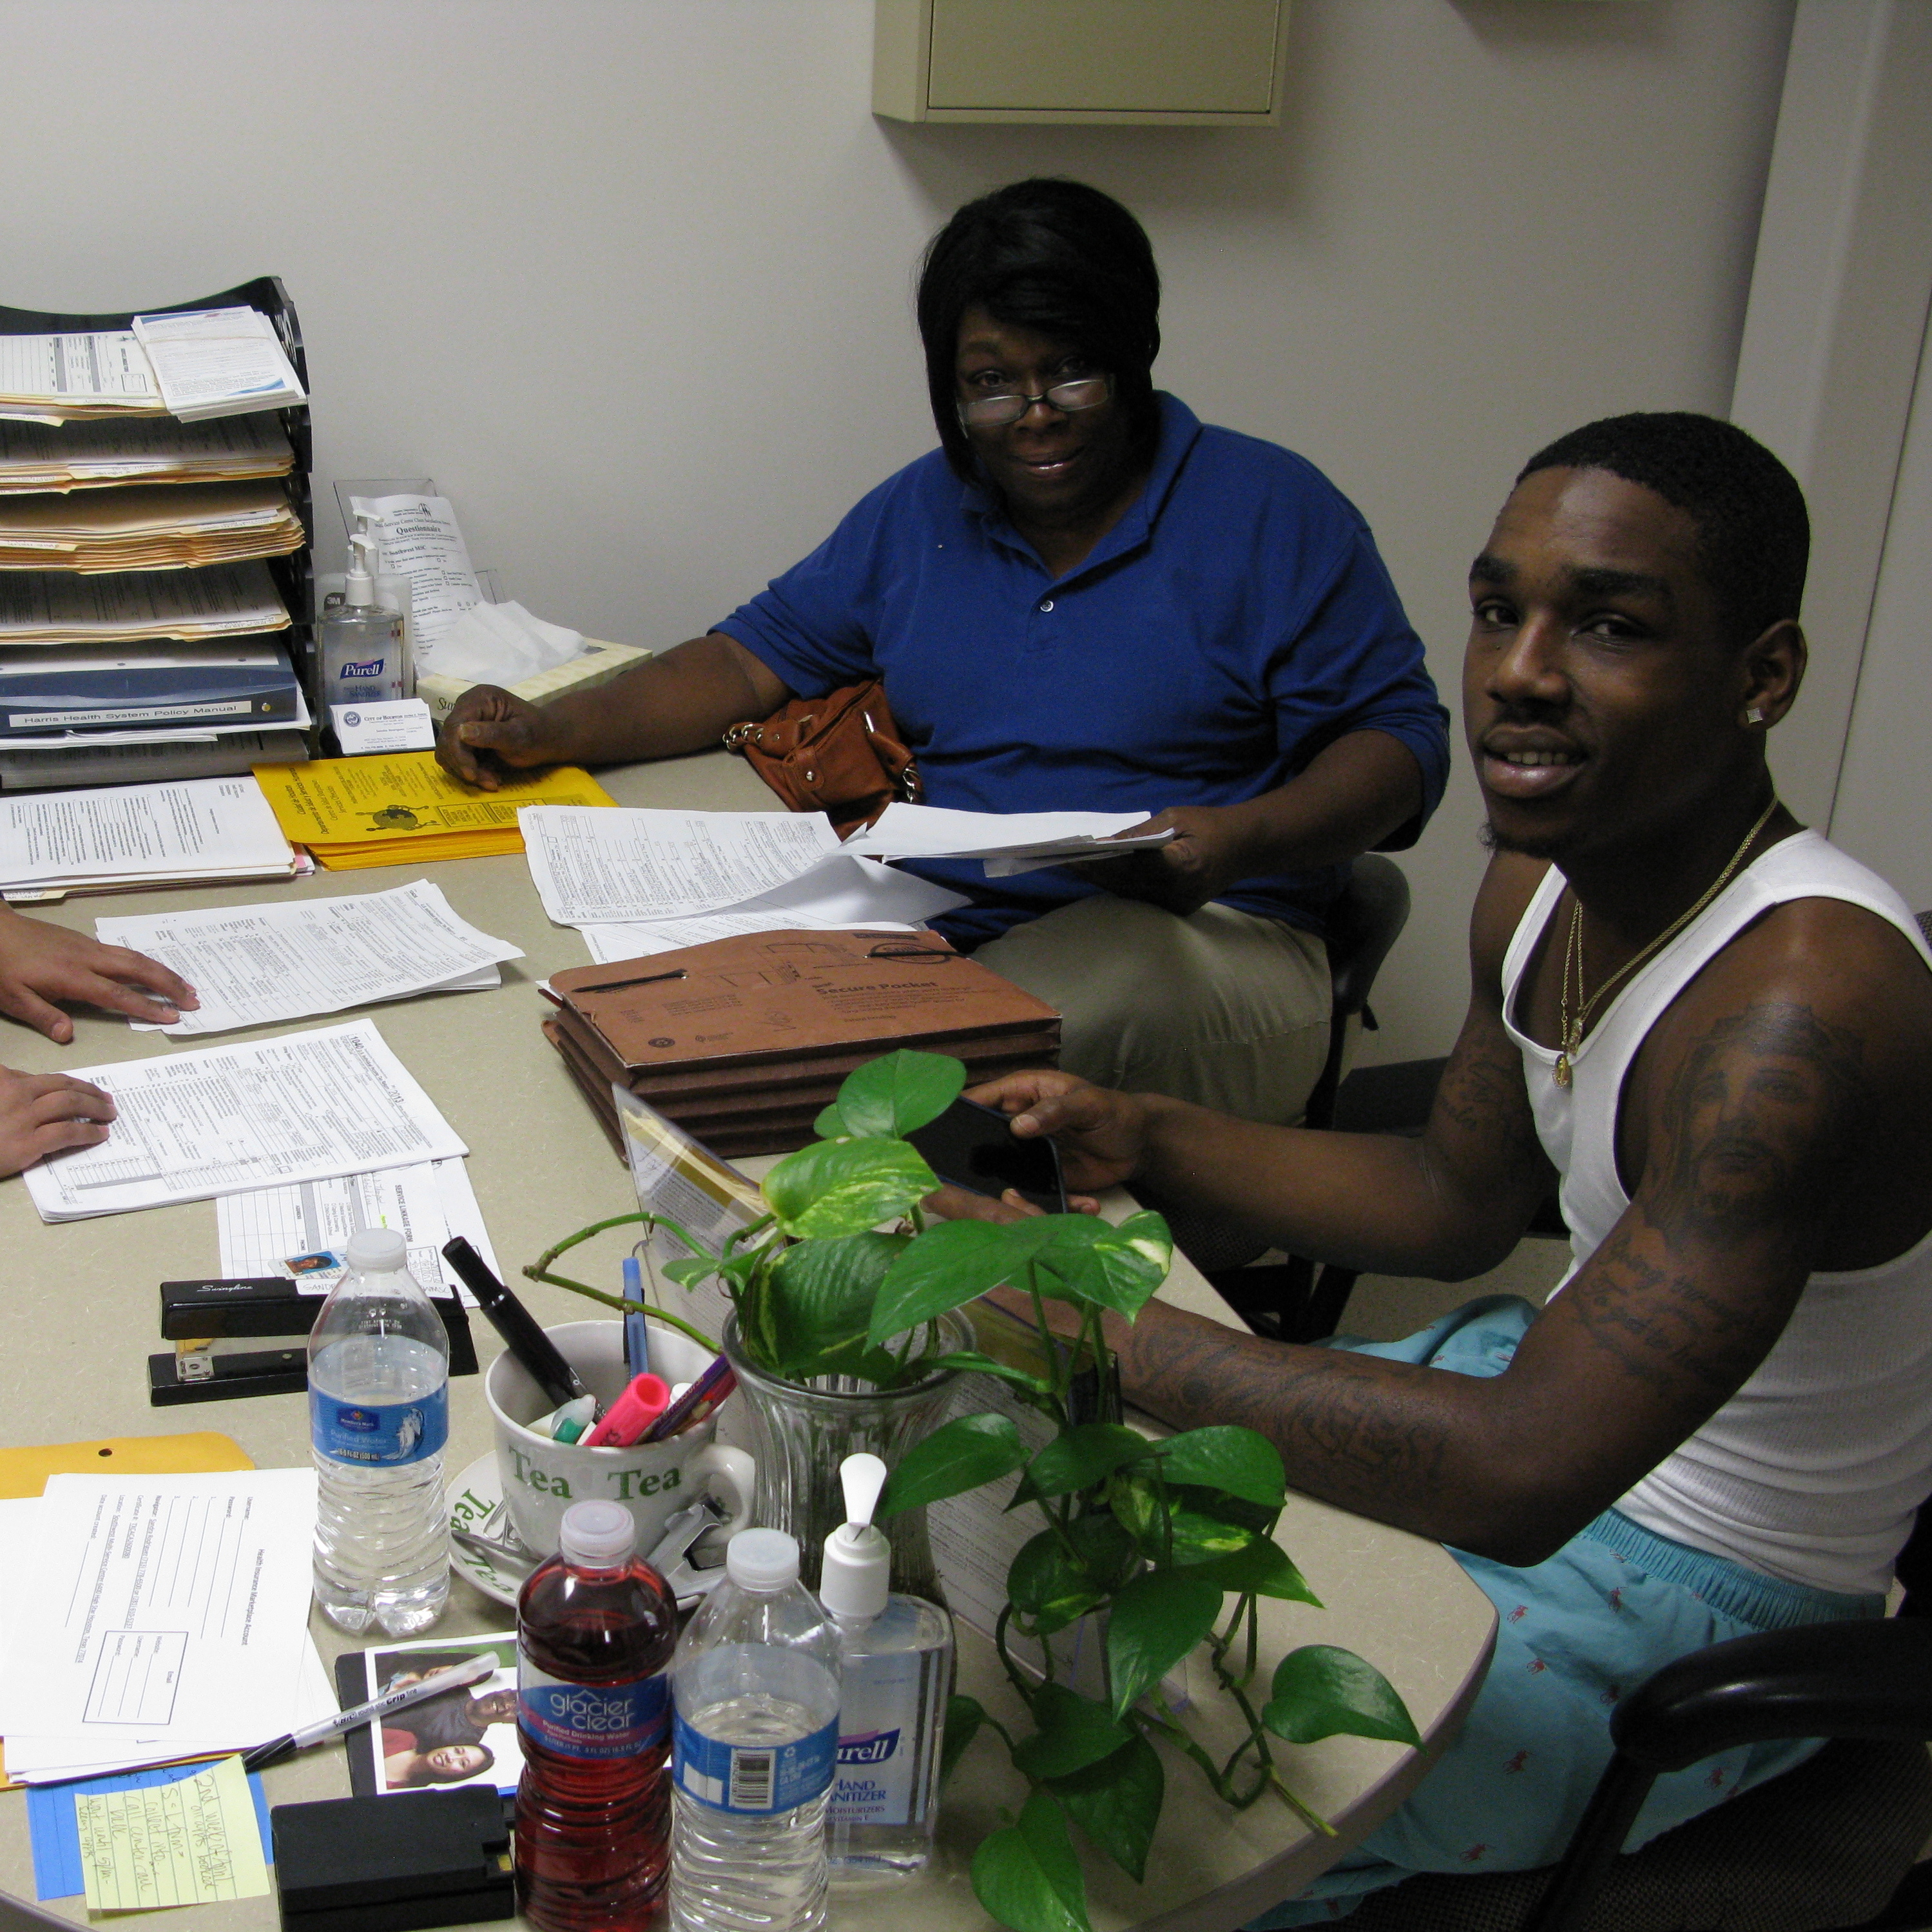 Sandra Rodriguez, a health care navigator for the city of Houston, helps Pamela Thompson and her son Charles Slater evaluate their insurance options on Monday.